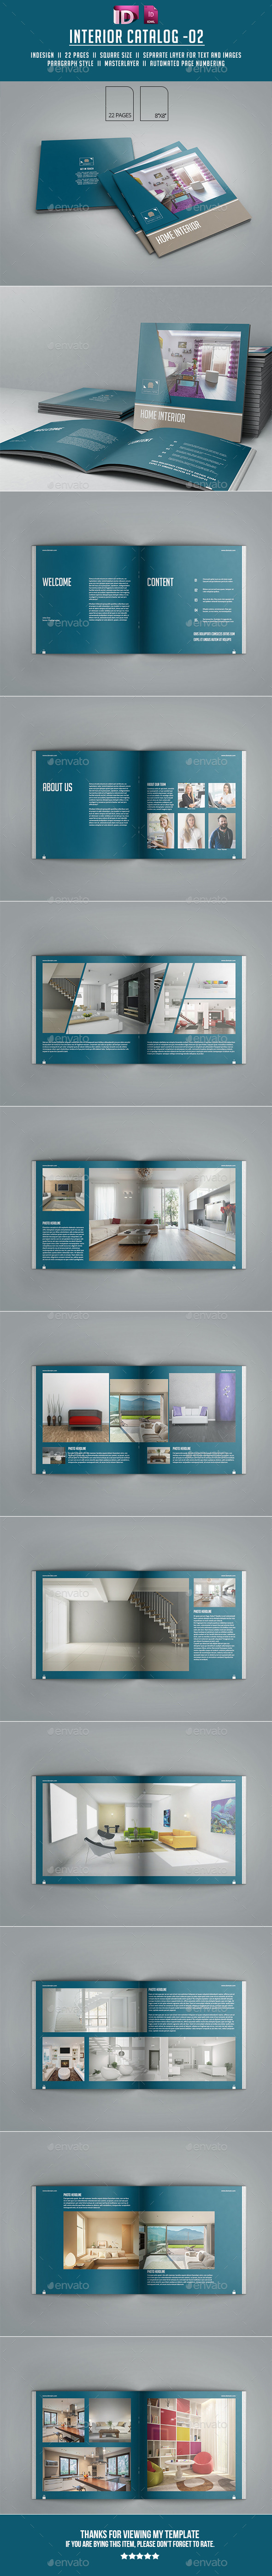 GraphicRiver Interior Catalog 02 11827117